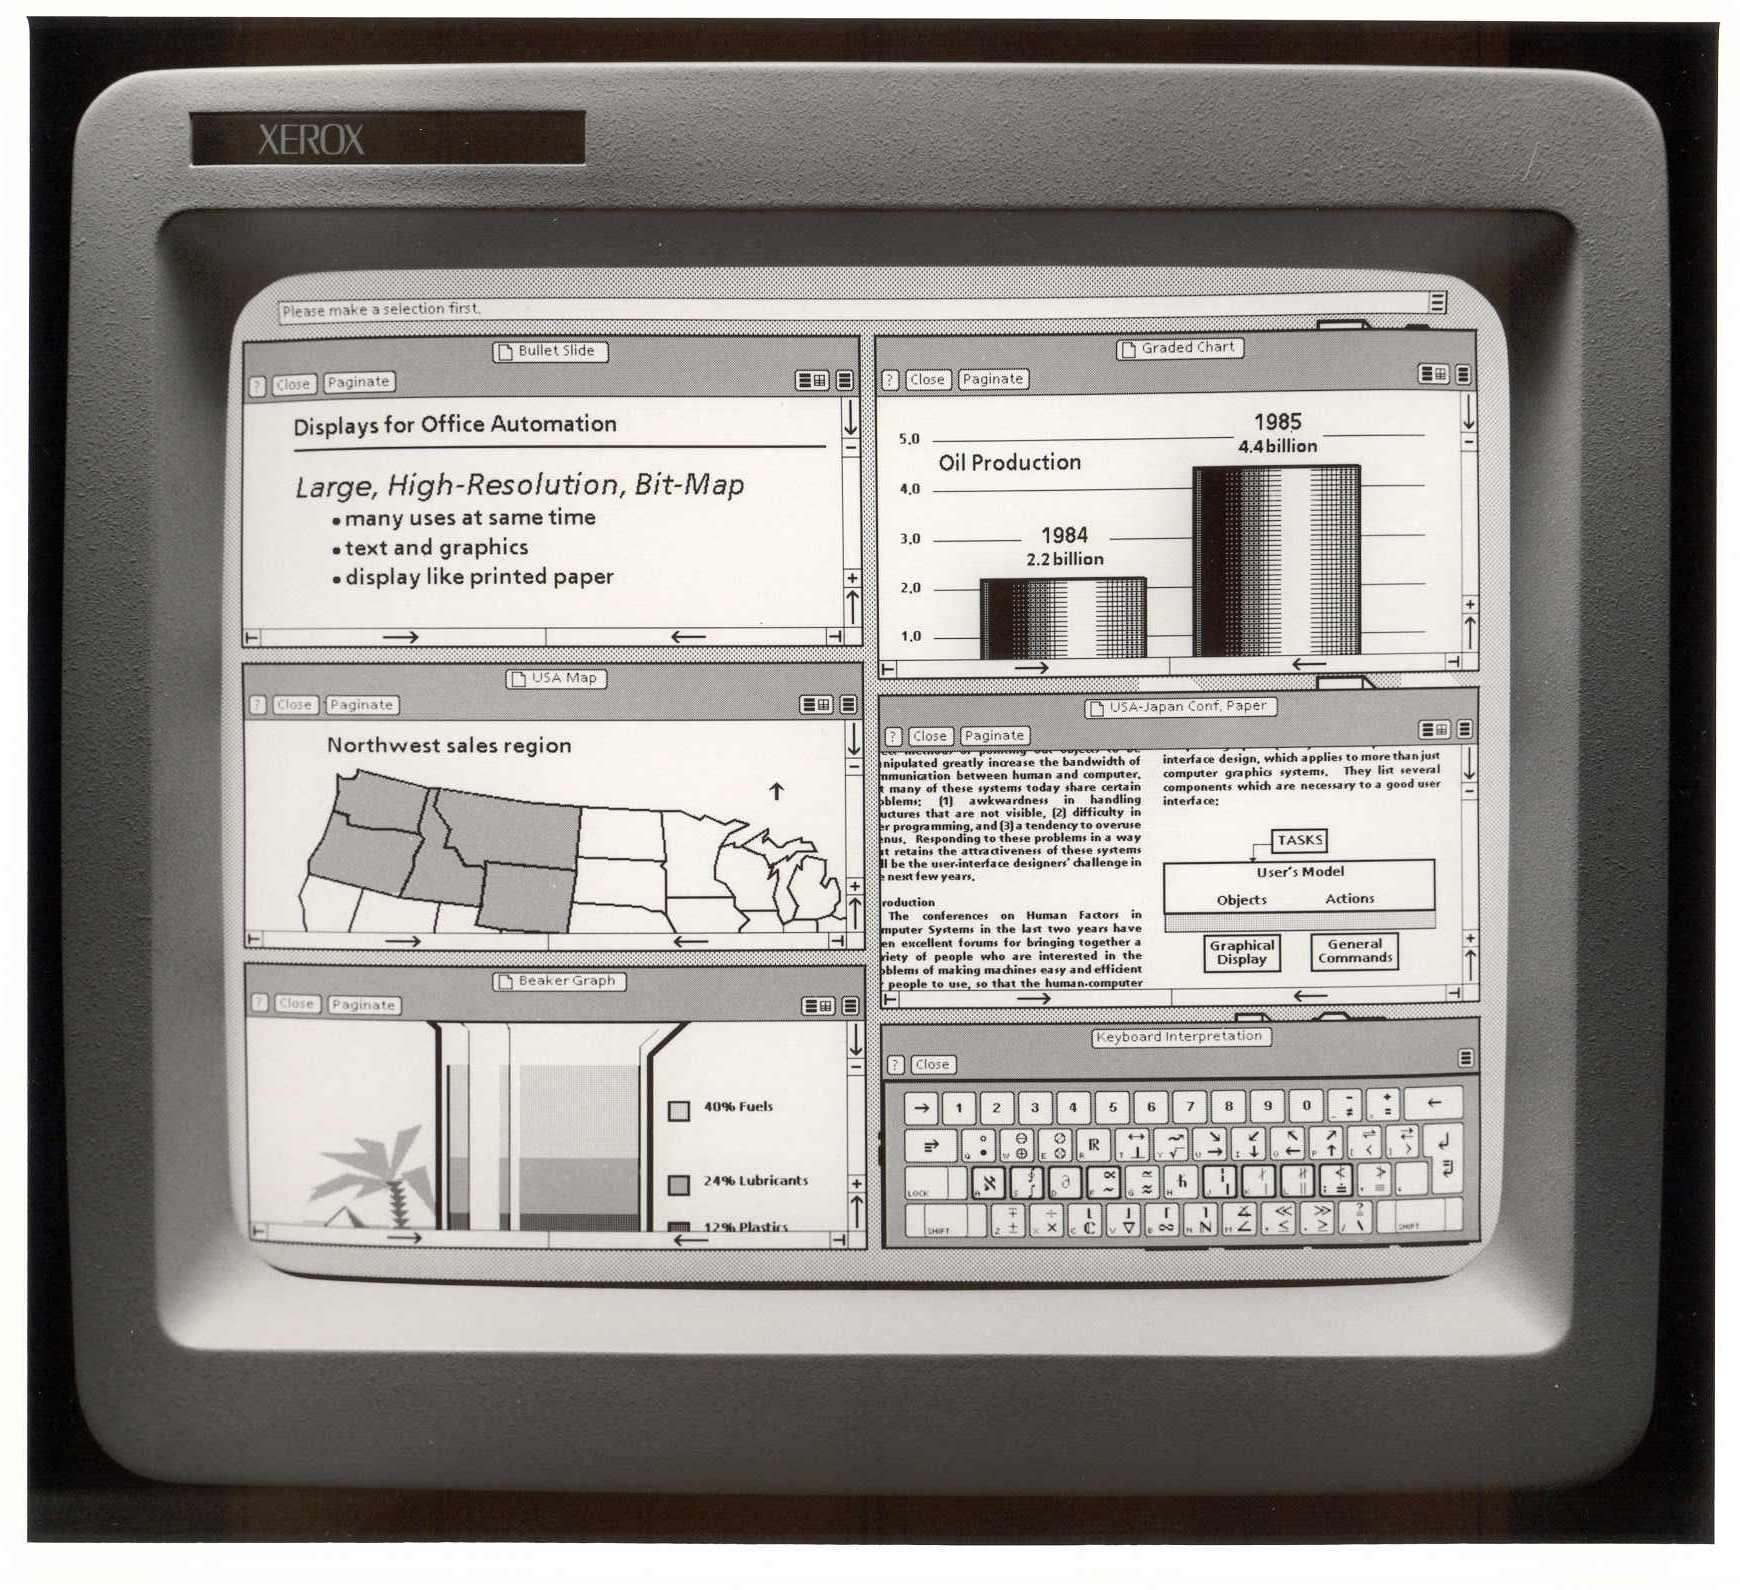 Xerox star workstation one of the first GUIs